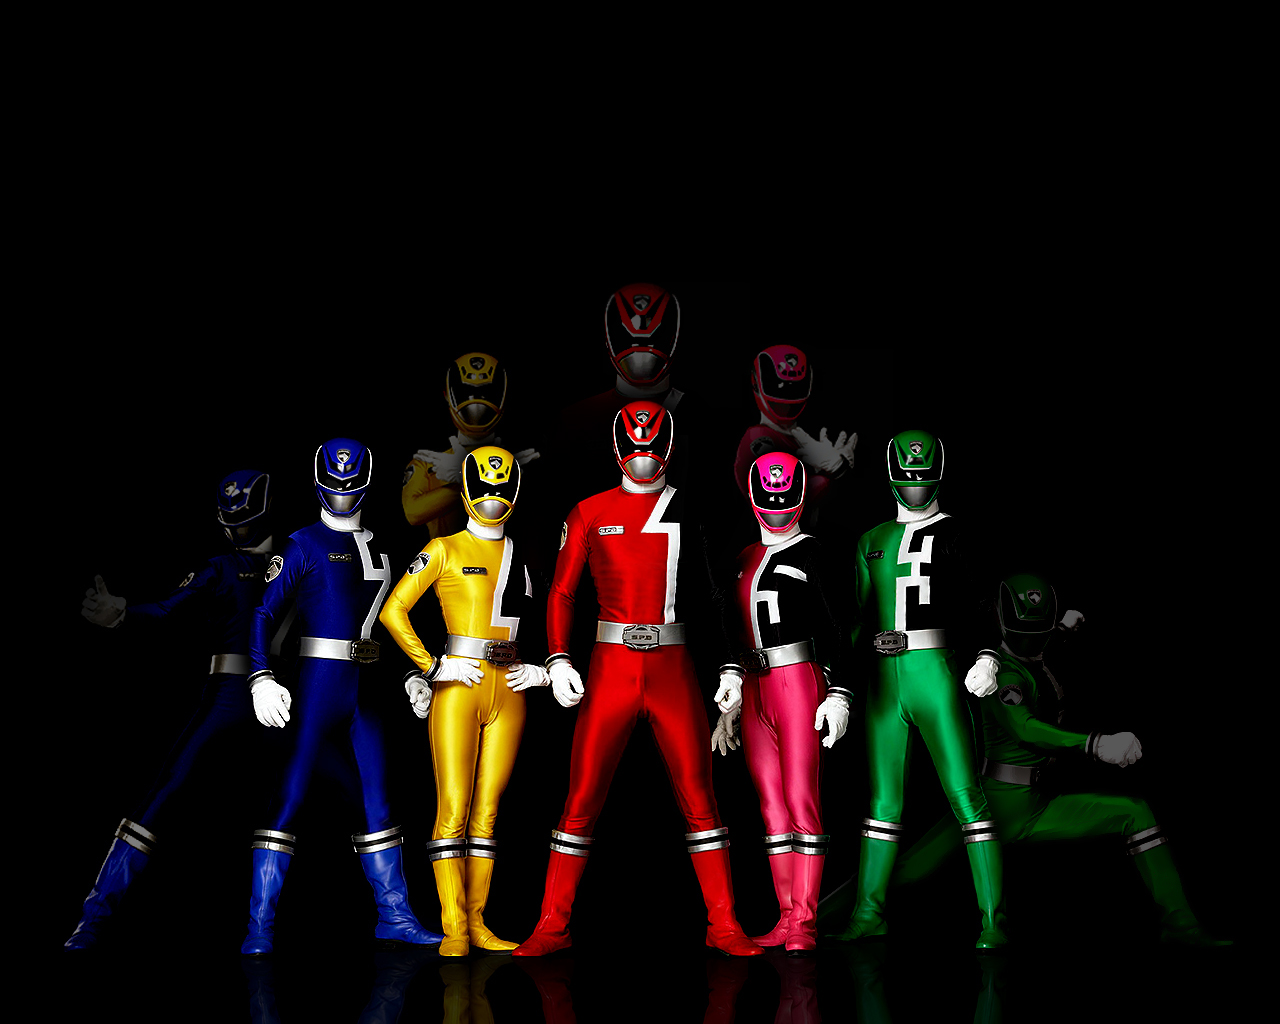 Central wallpaper power rangers desktop wallpapers